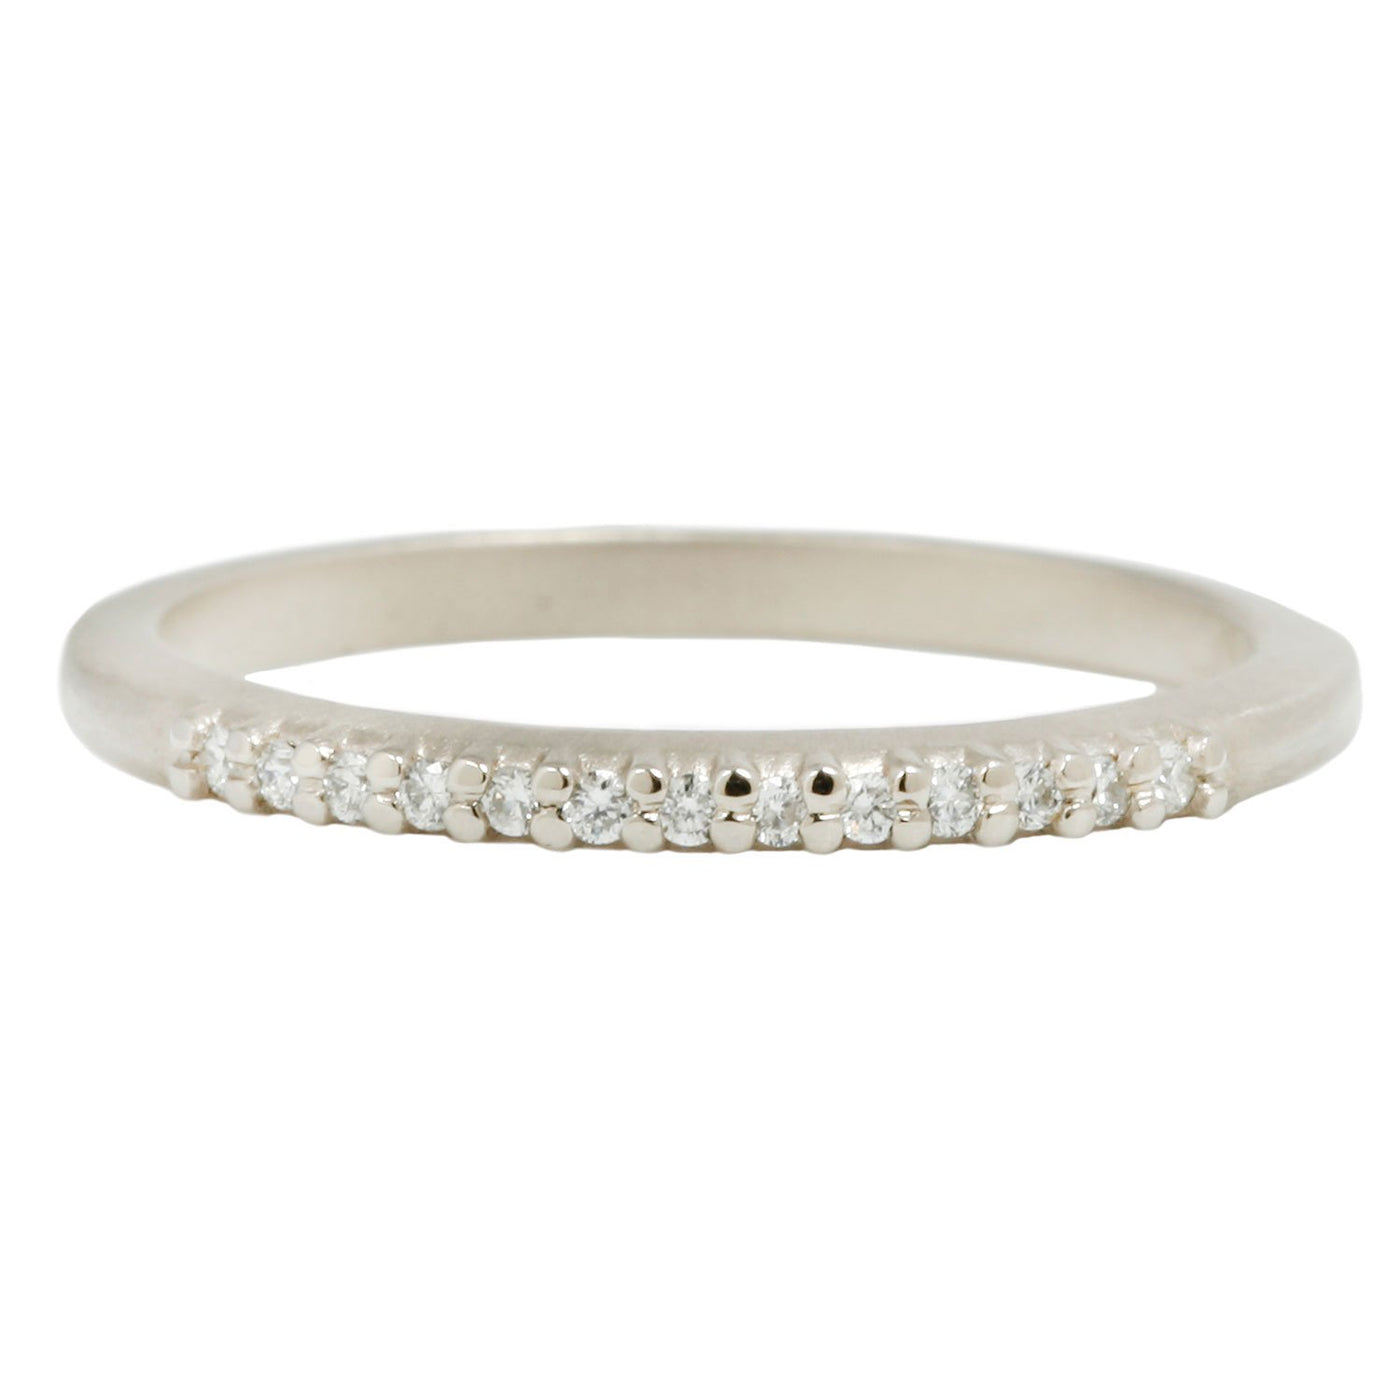 Megan Thorne Slender Pave Diamond Band